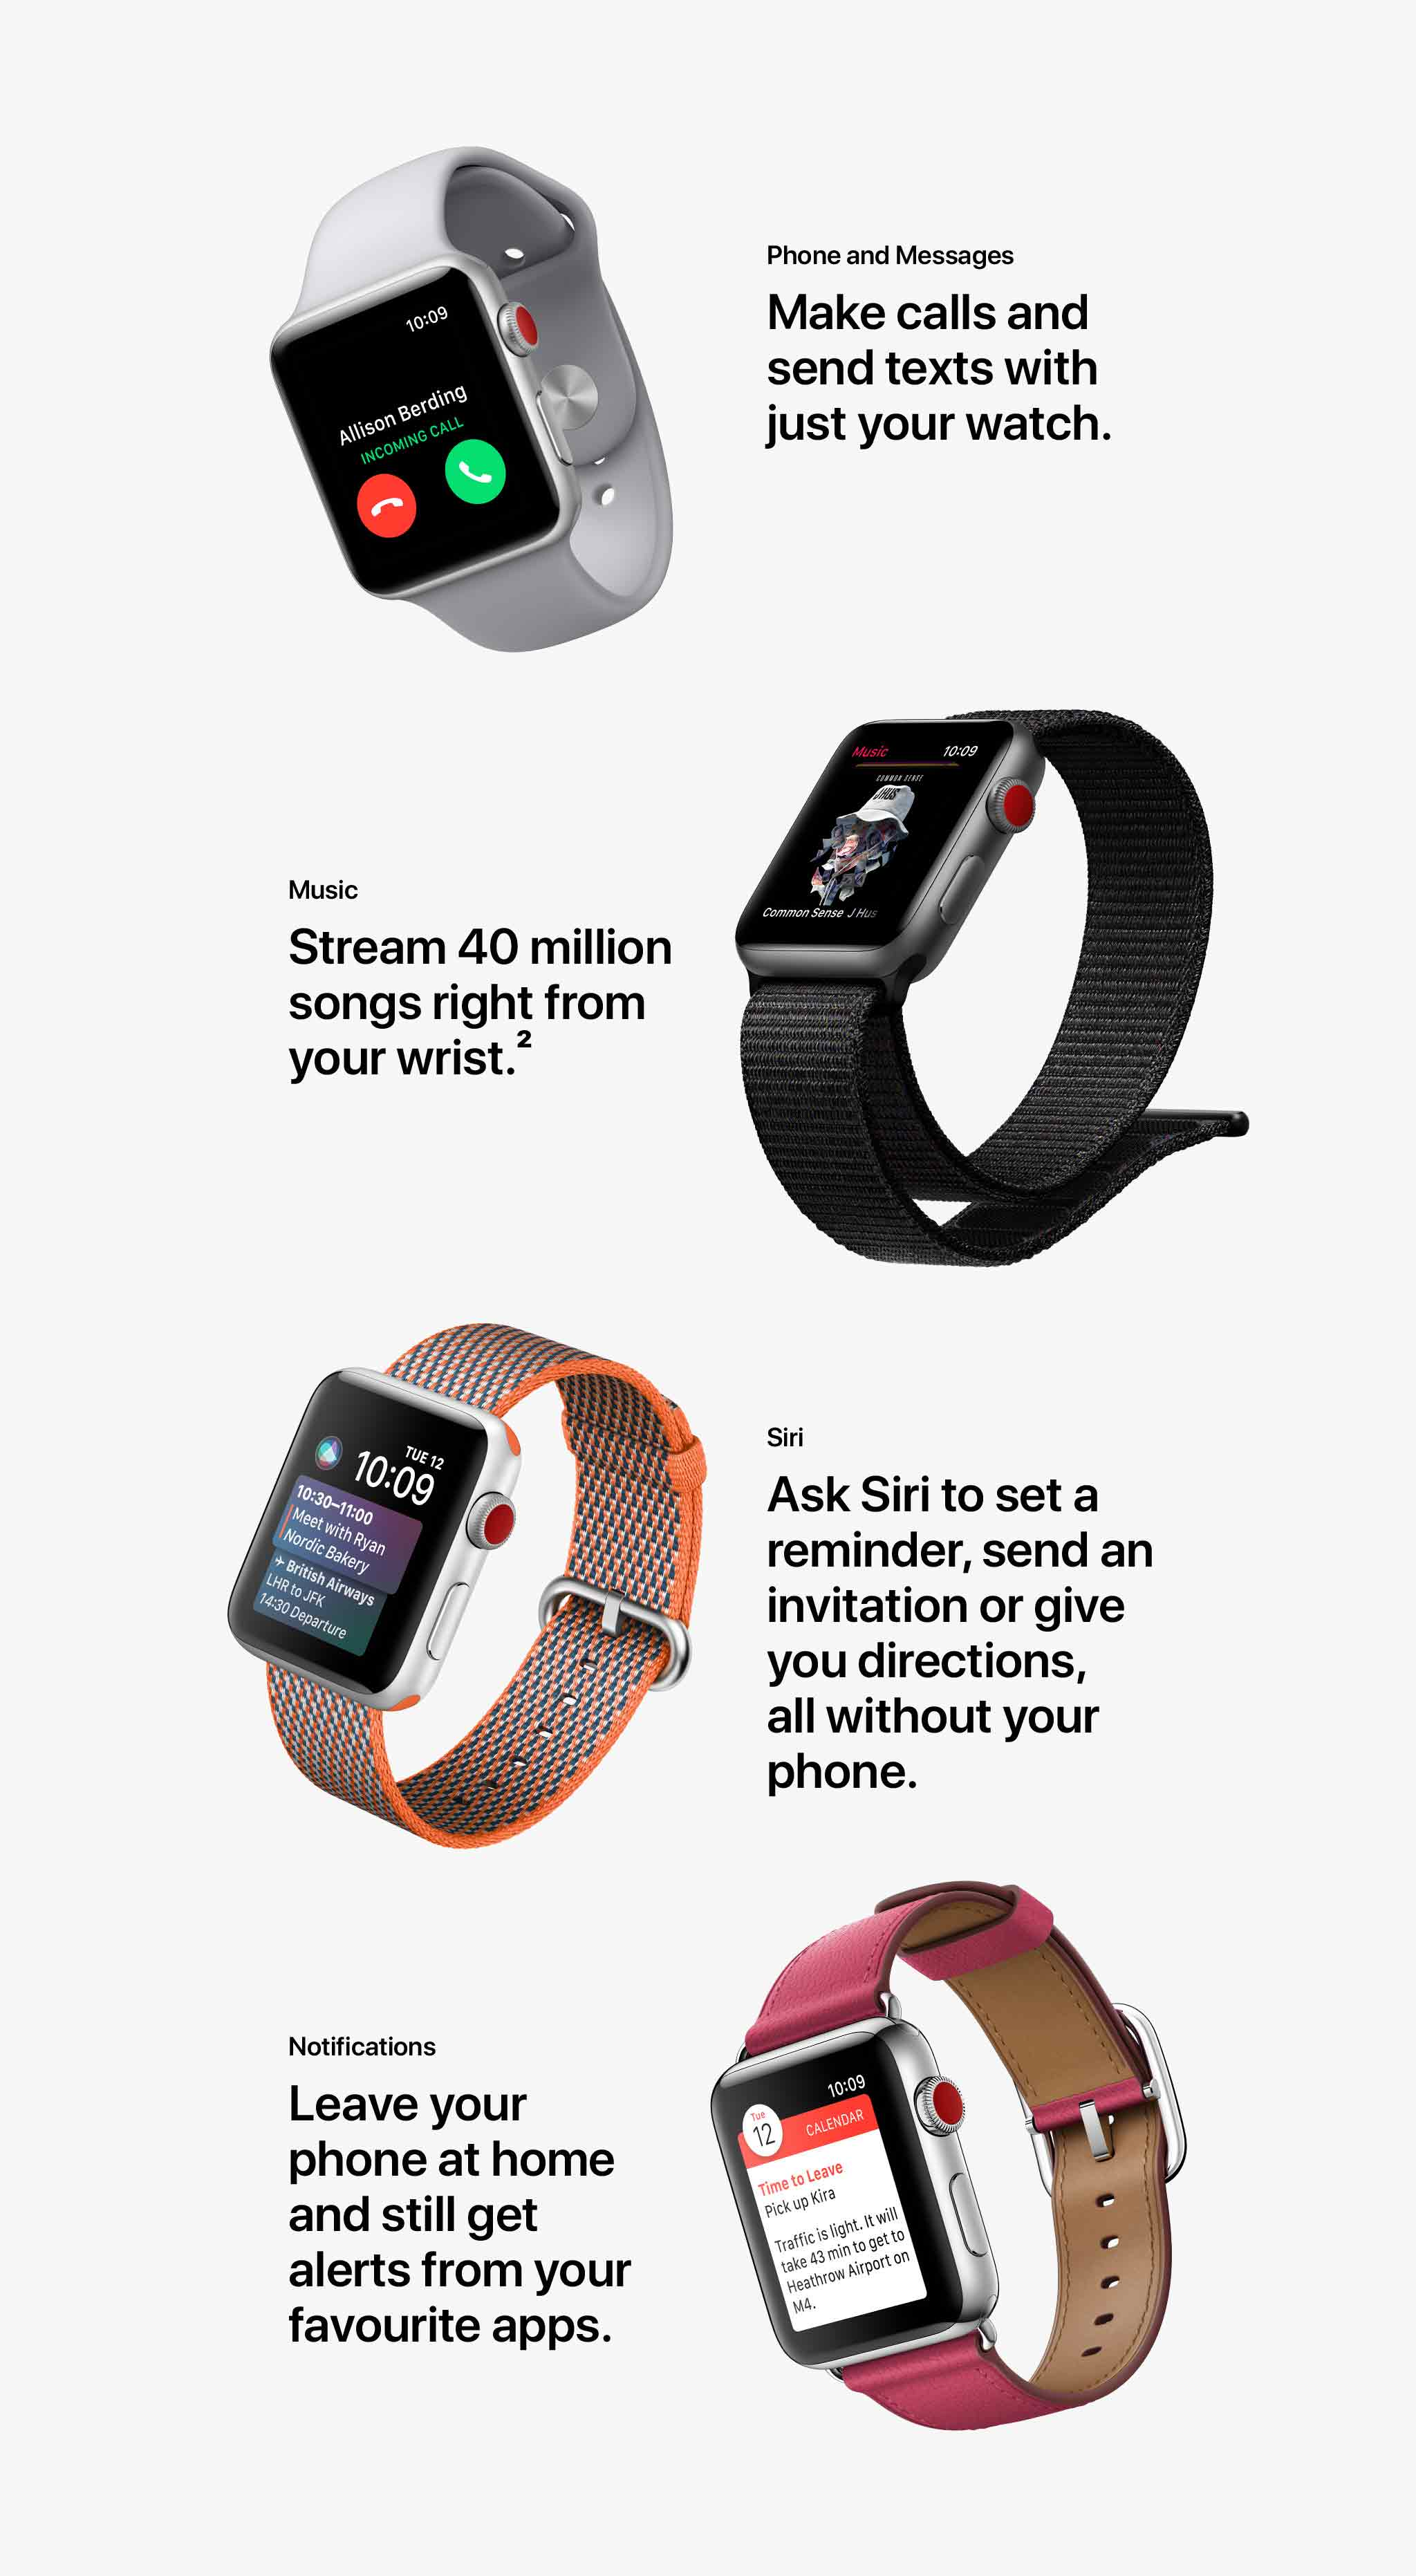 Apple Watch Series 3 messages and music features